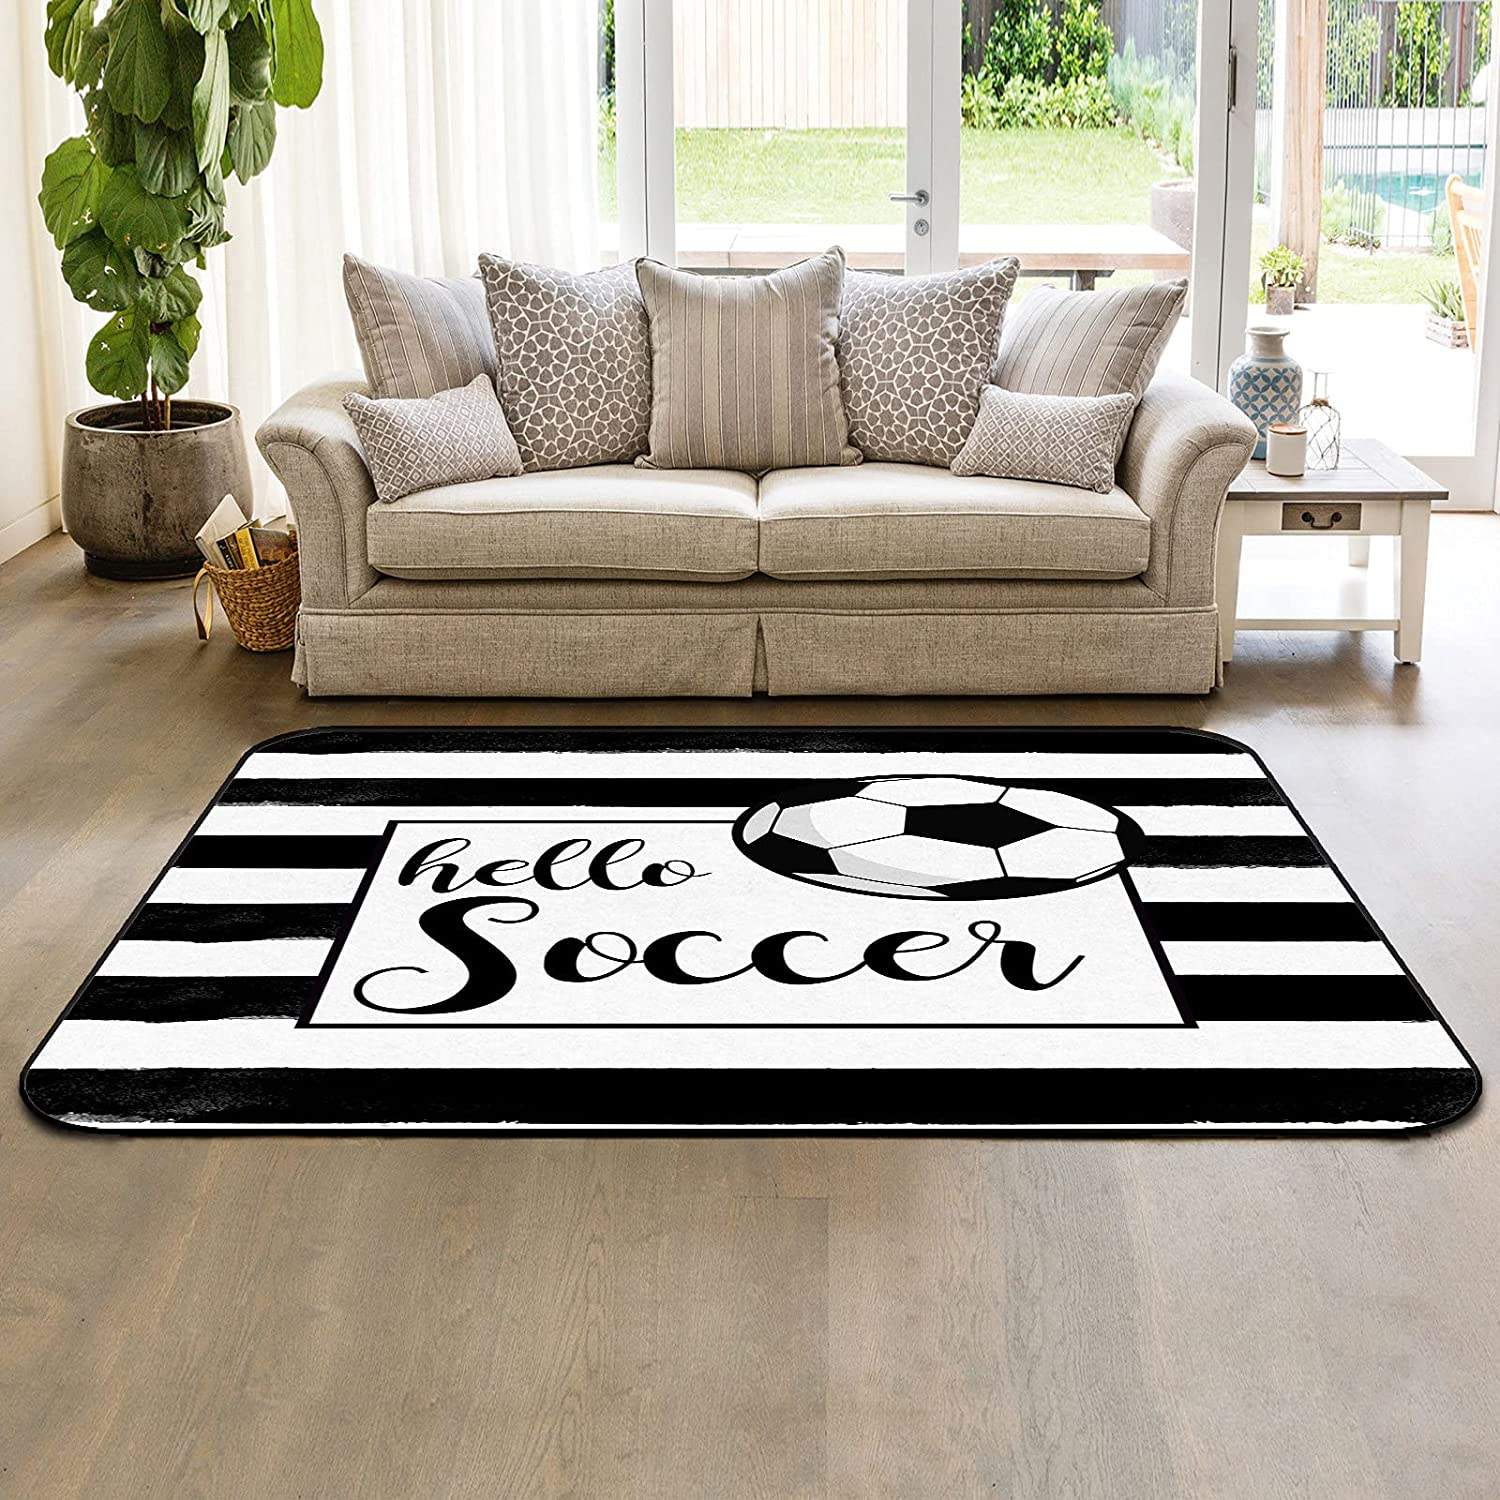 Challenge the lowest price of Japan Beauty Decor Large Area Rugs OFFer for Room Living M Low-Profile Floor